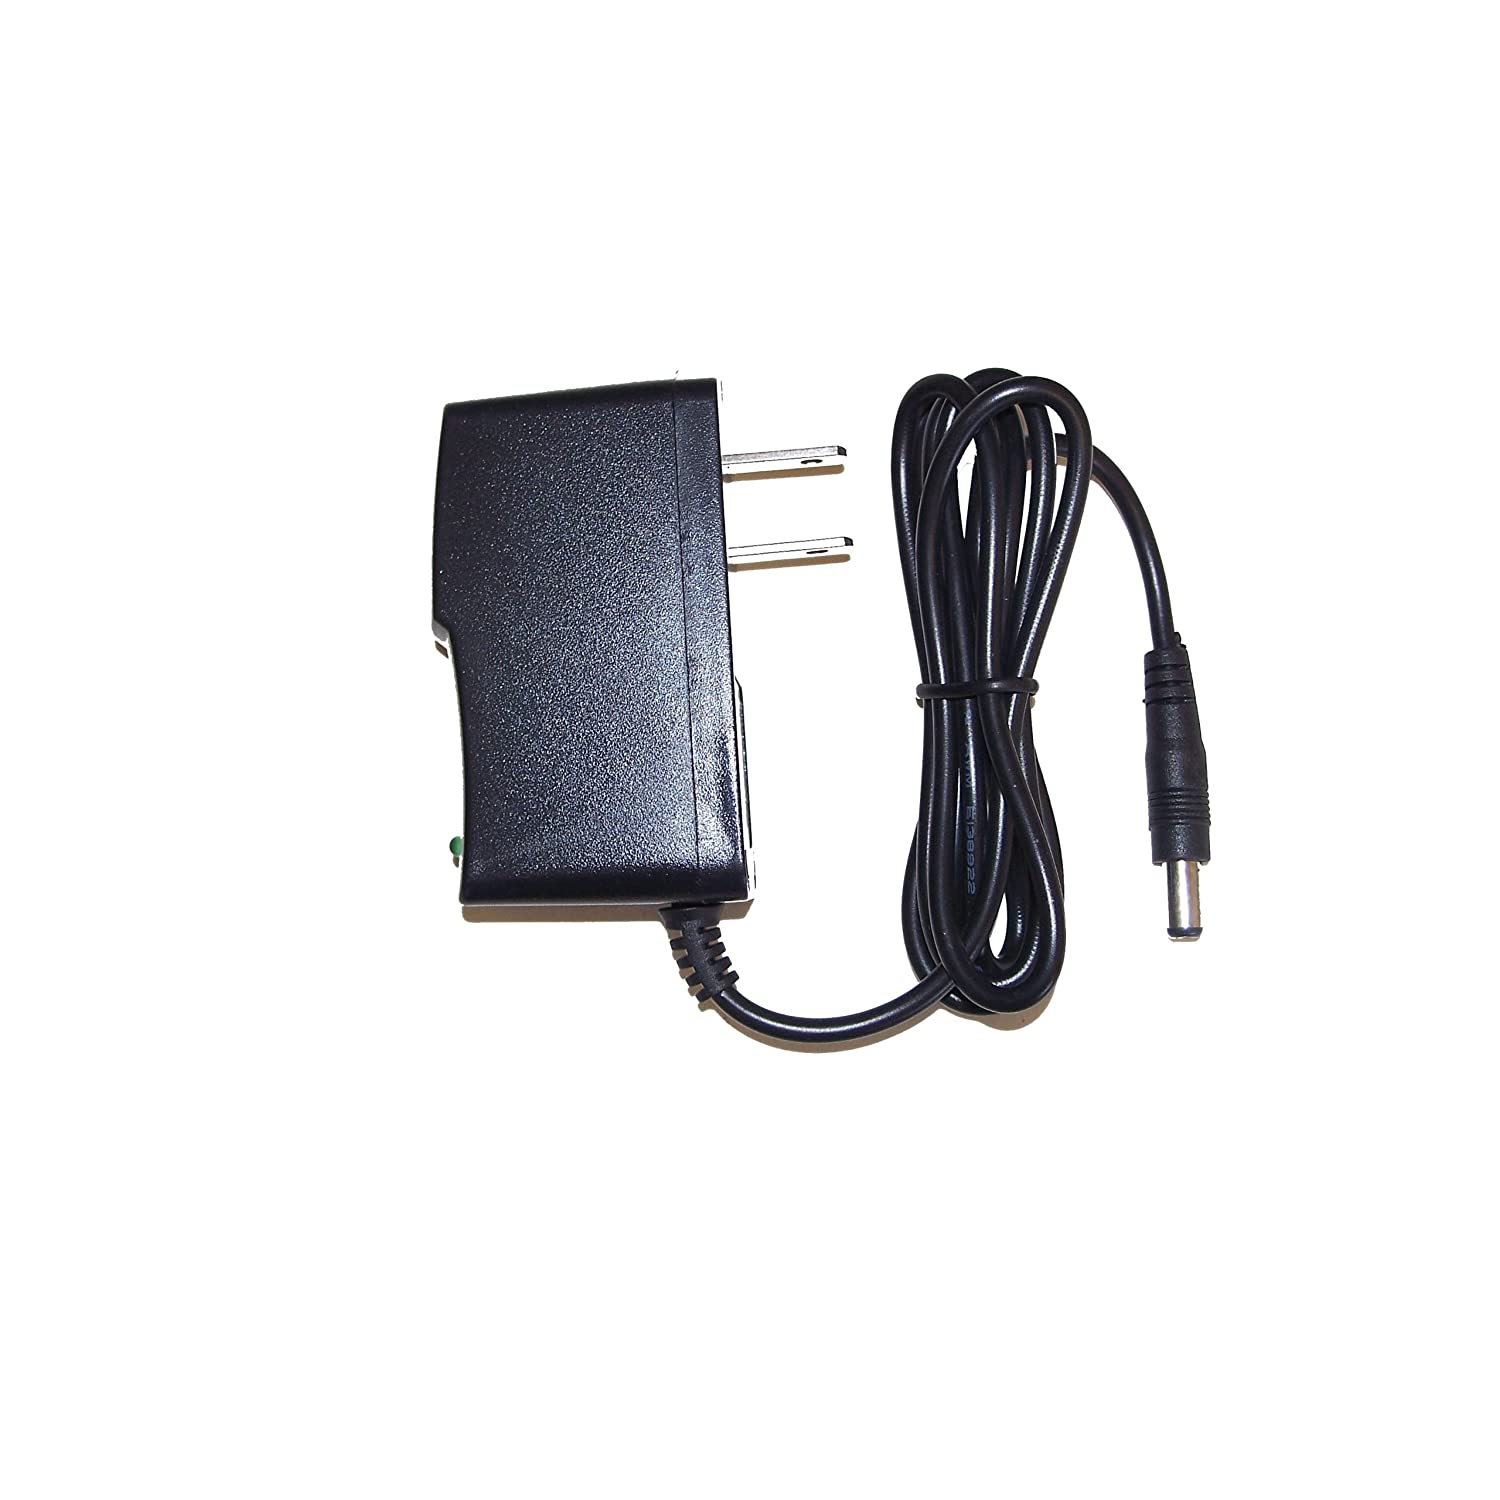 Home Wall AC Power Adapter//Charger Replacement for RadioShack PRO-82 Radio Scanner